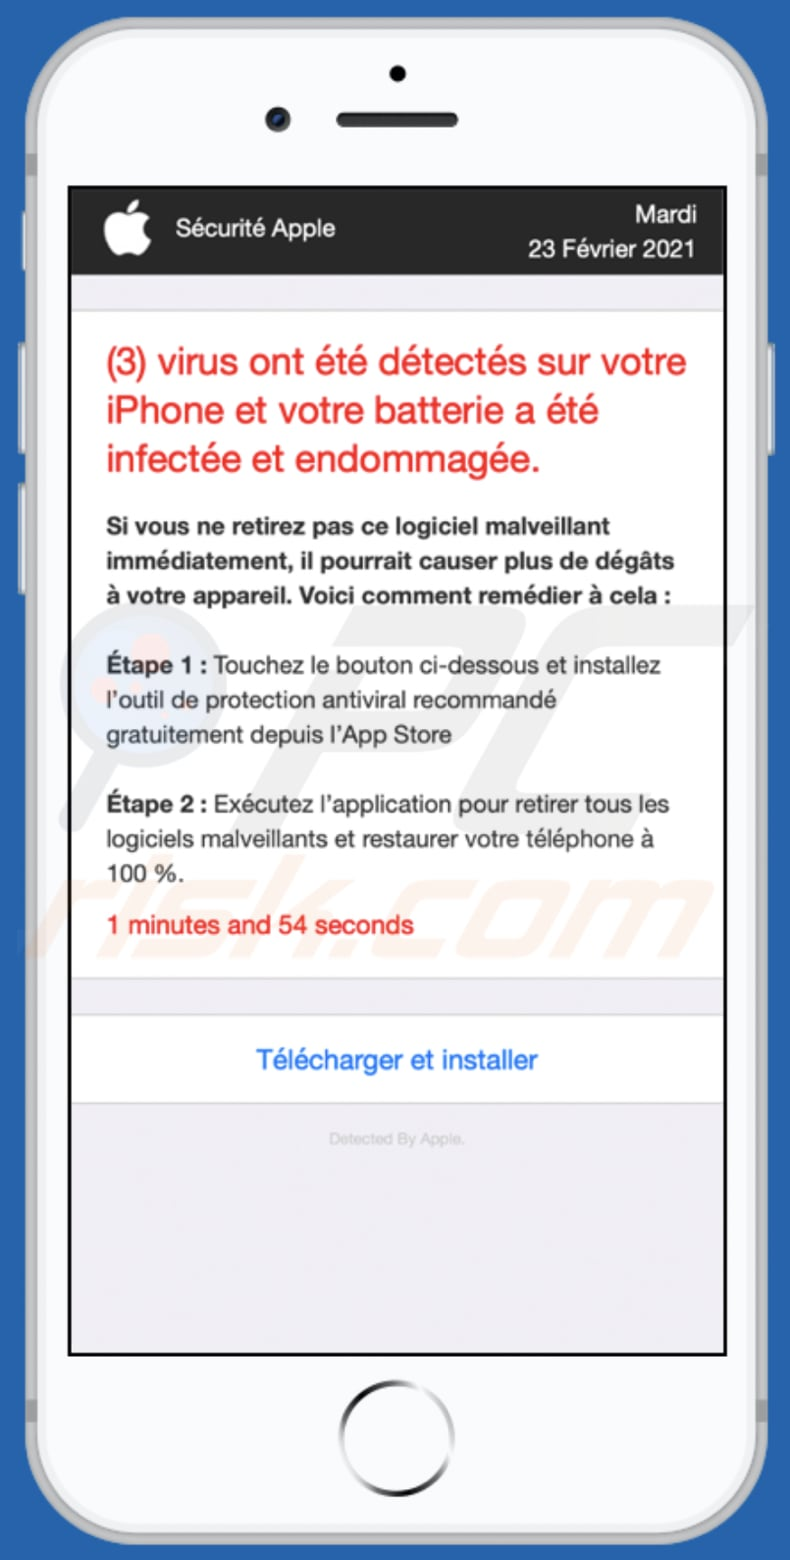 app-department.report pop-up scam french variant background